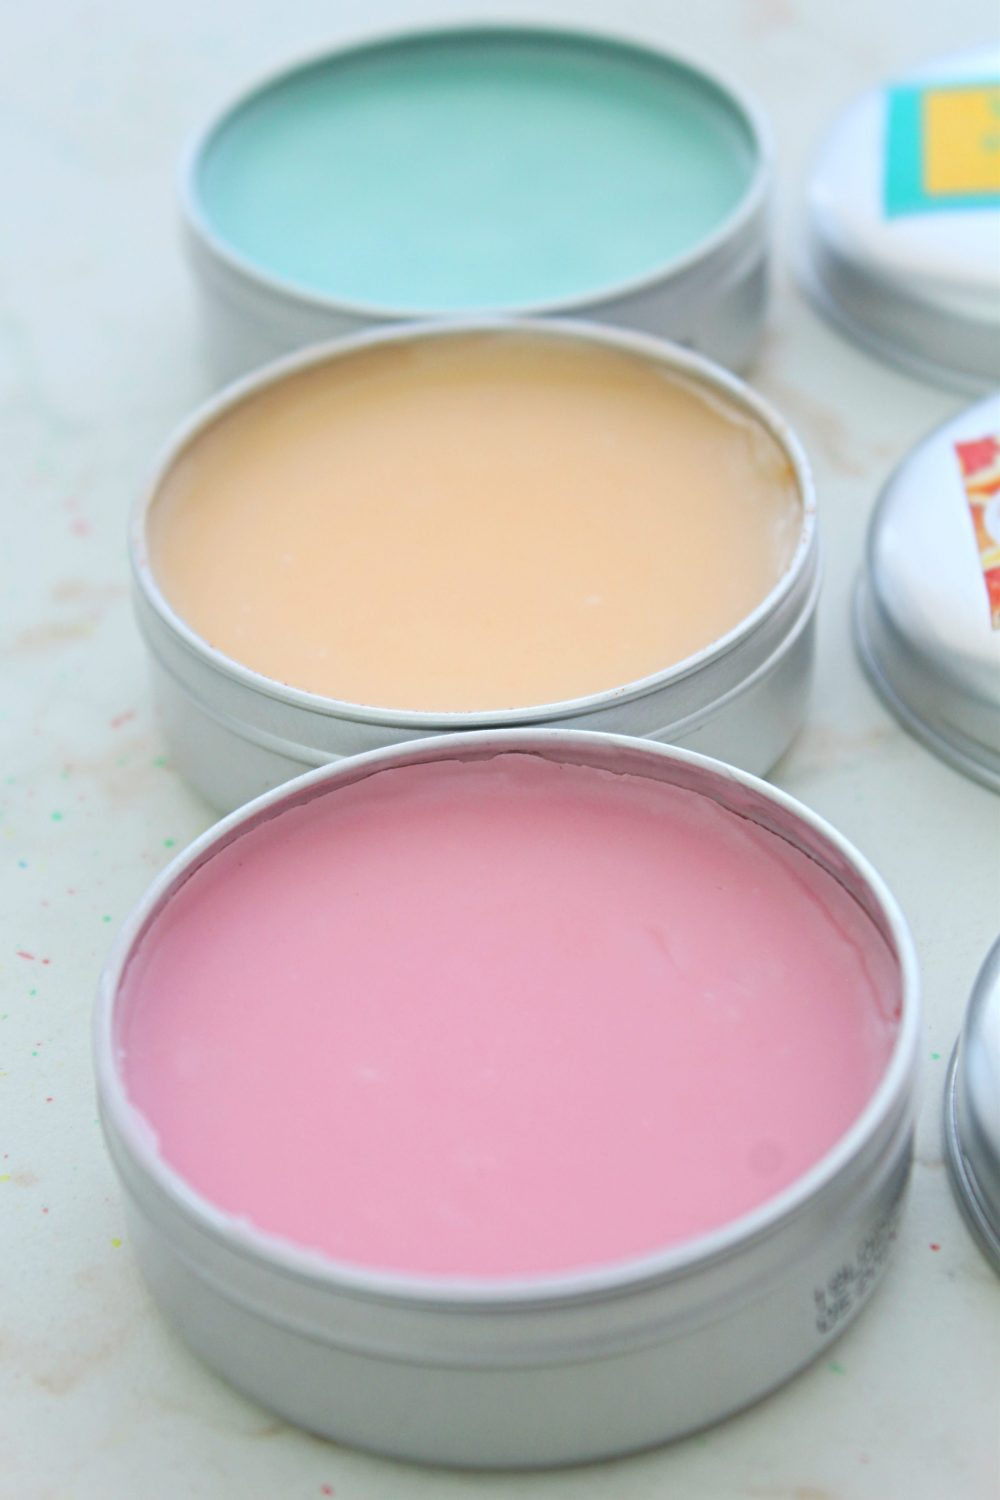 Diy Tinted Lip Balm Recipe With All Natural Ings